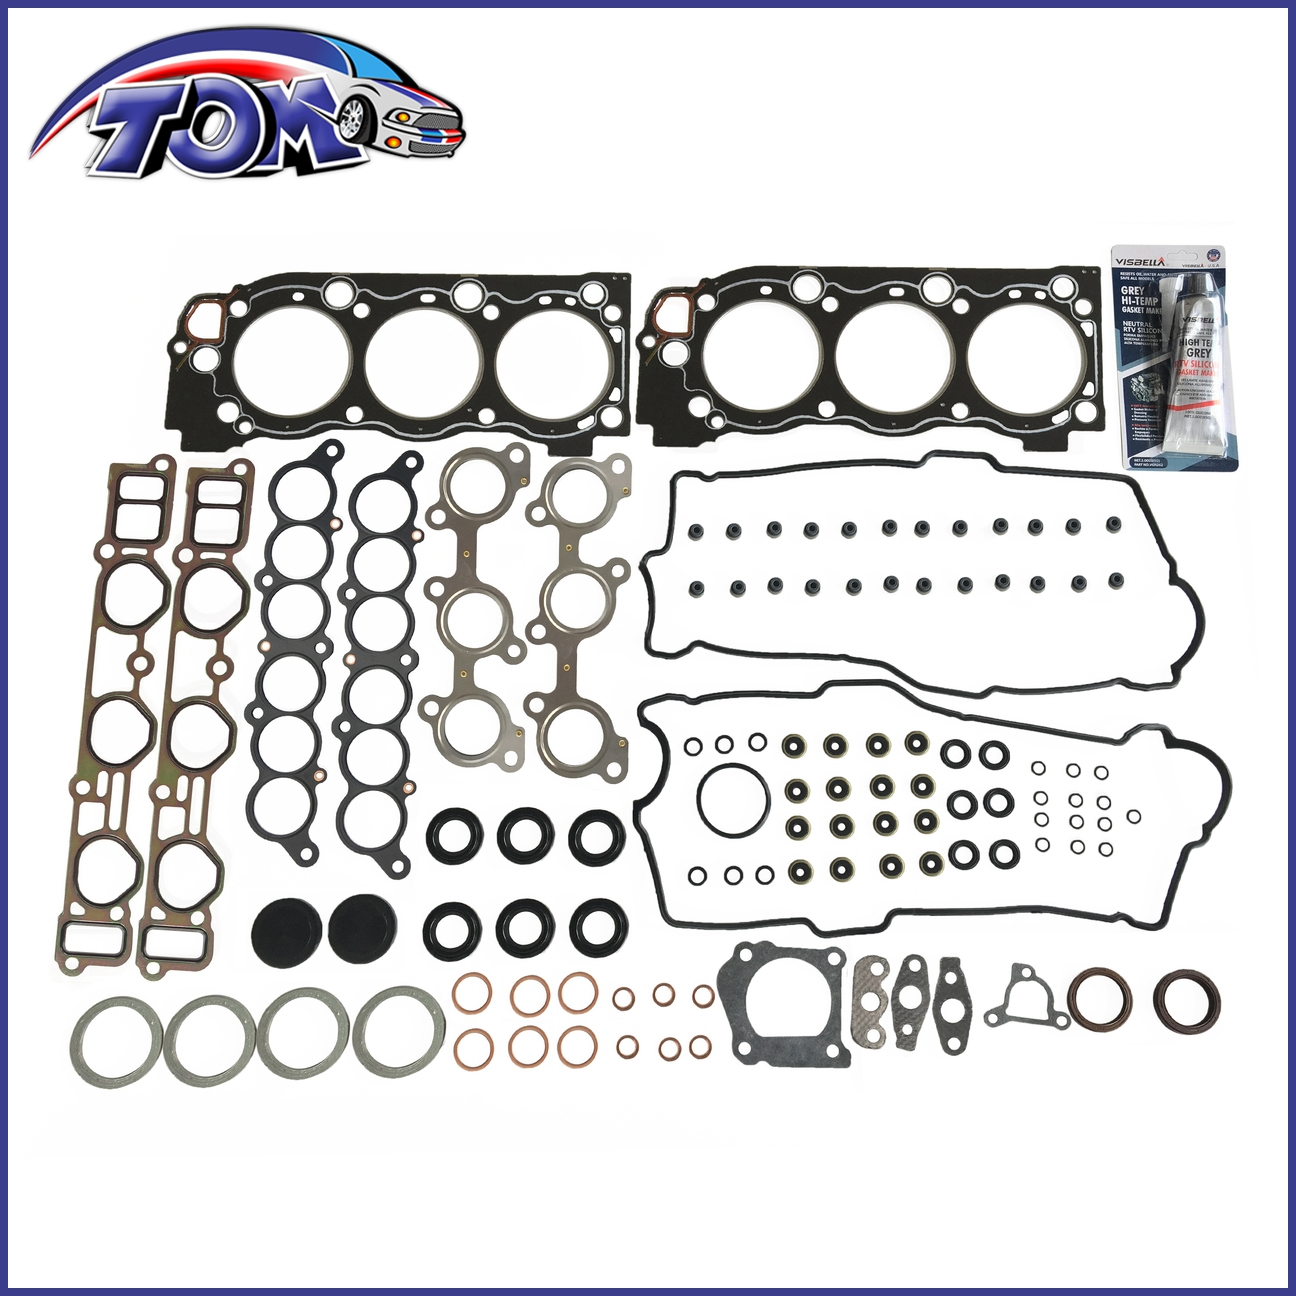 New Valve Cover Gasket Set Fit Toyota Truck 4Runner Tundra Tacoma T100 3.4L V6